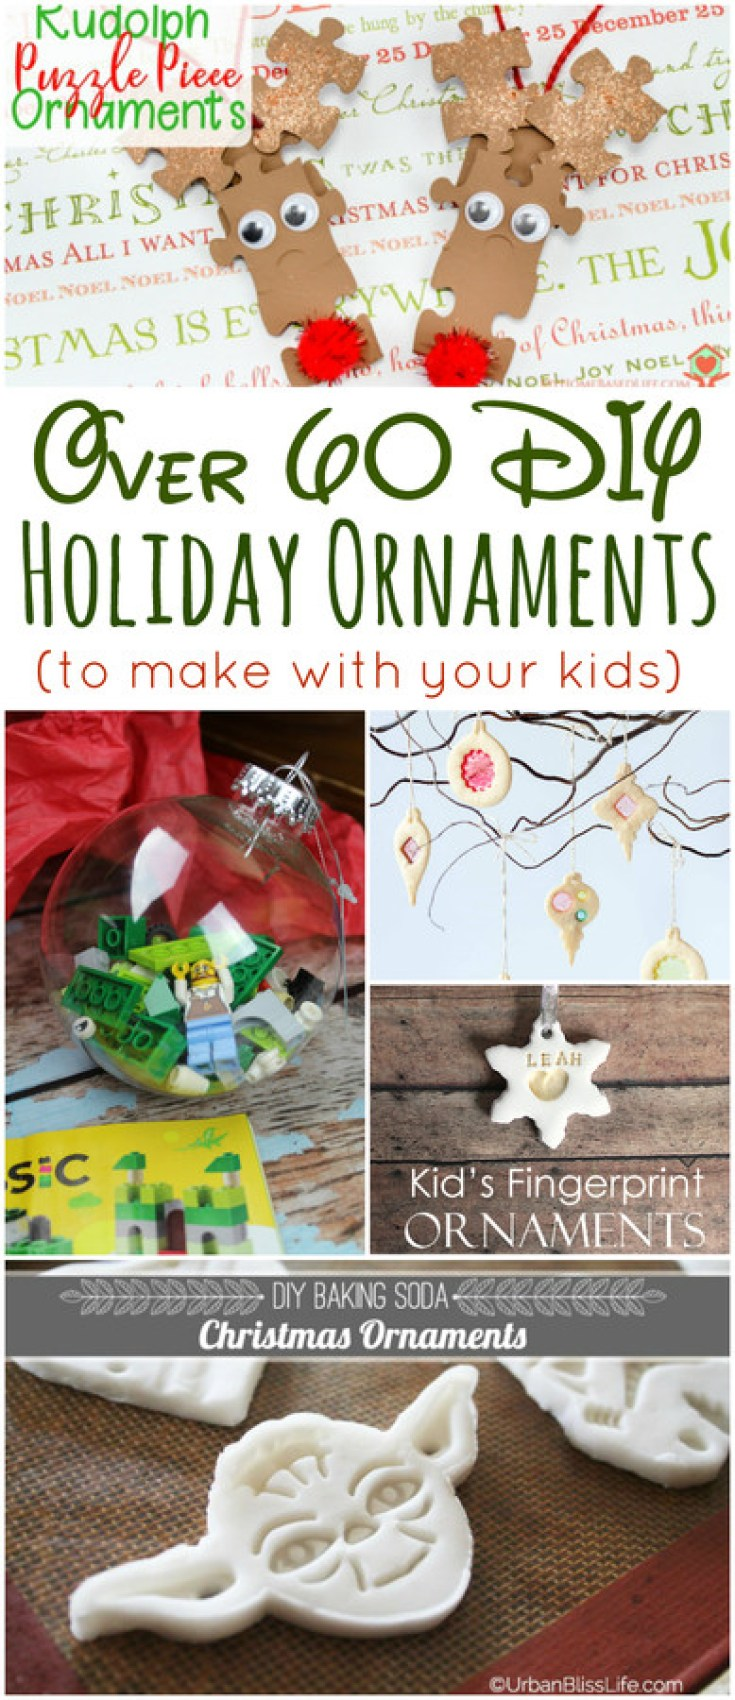 Over 60 DIY Holiday Ornaments to make with your kids this holiday season! #Christmas #ornaments #DIY #handmade